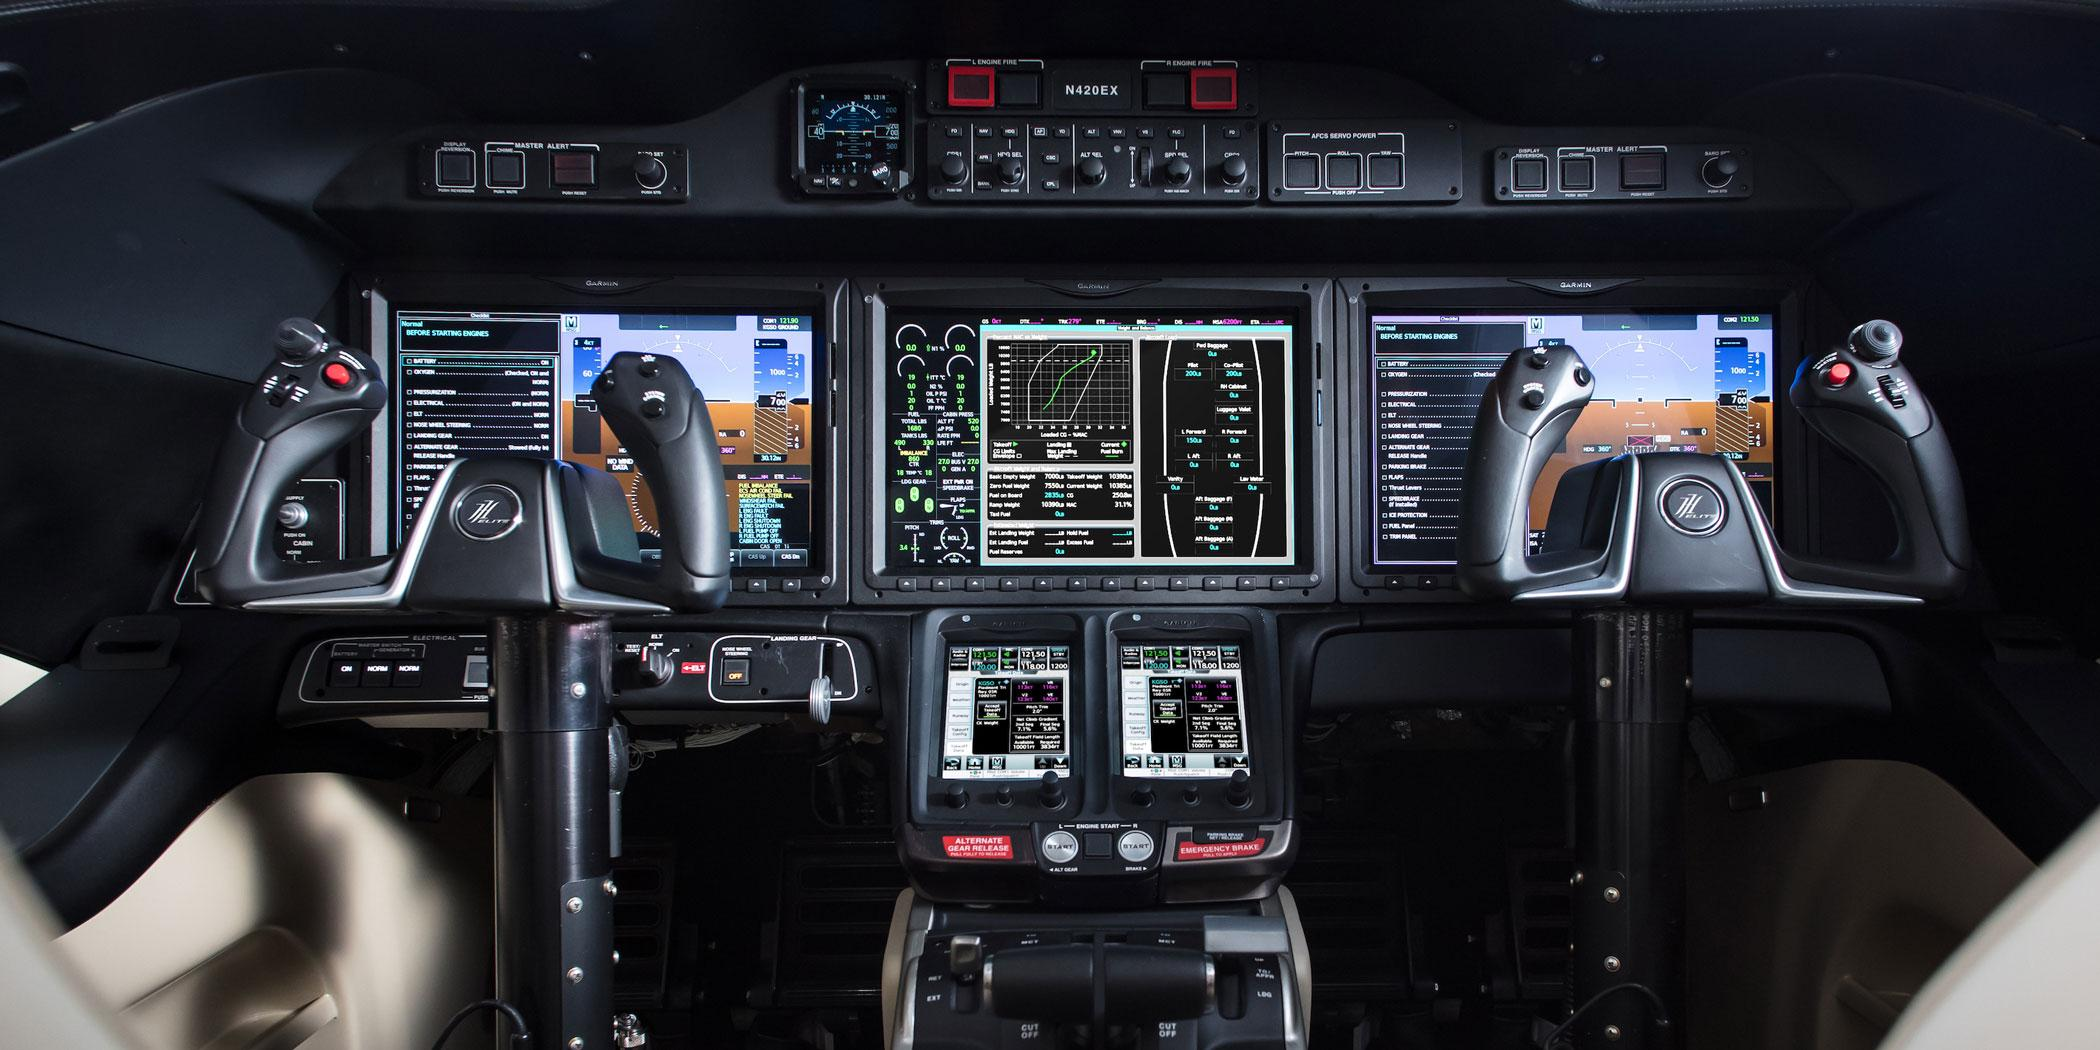 HondaJet Elite cockpit